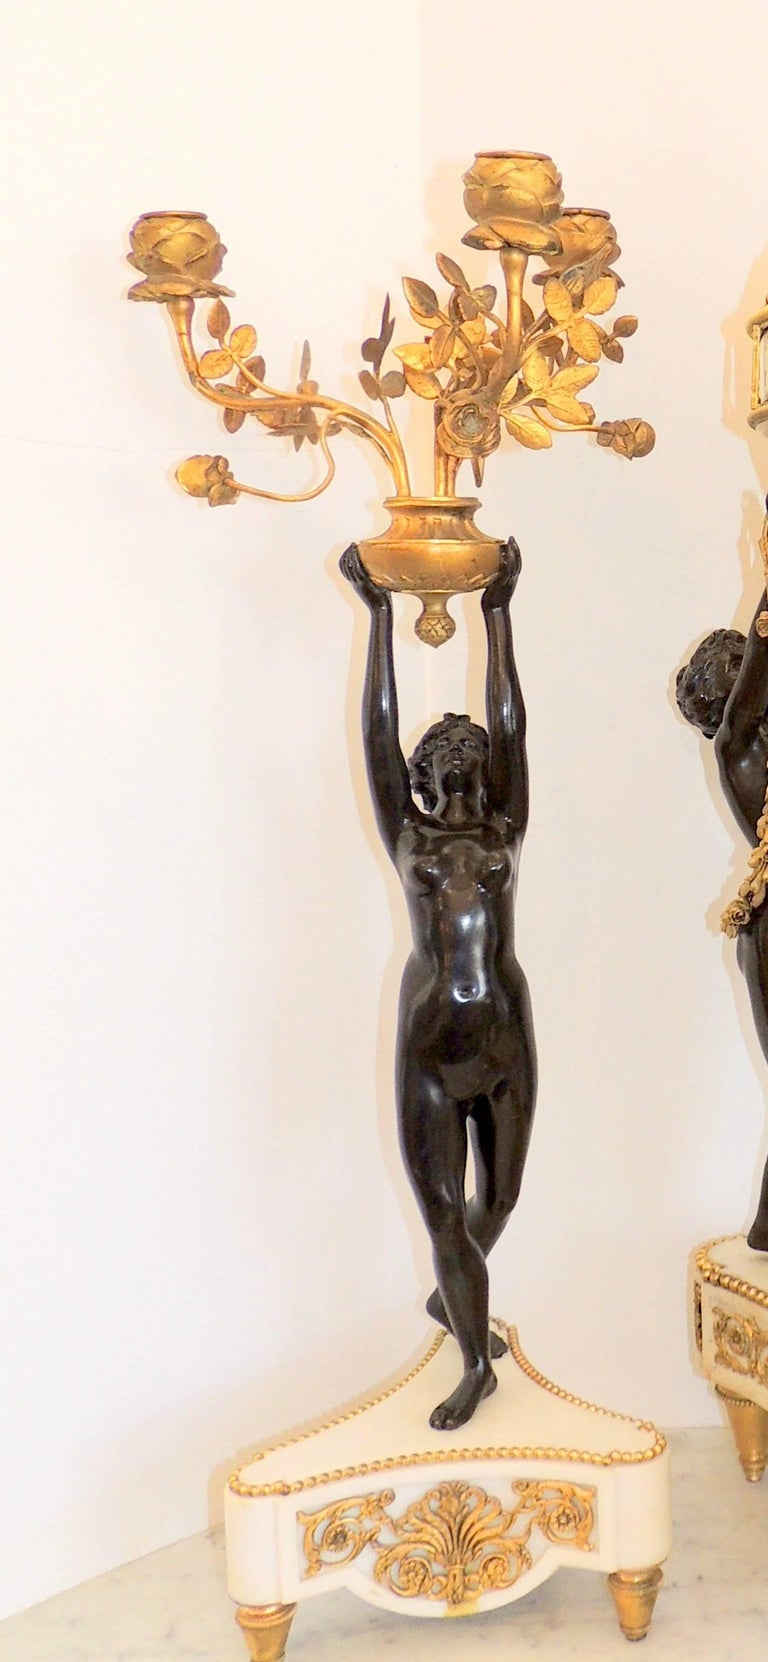 Louis XVI Exceptional French Three Graces Piece Rotary Mystery Clock Set Candelabra Suite For Sale